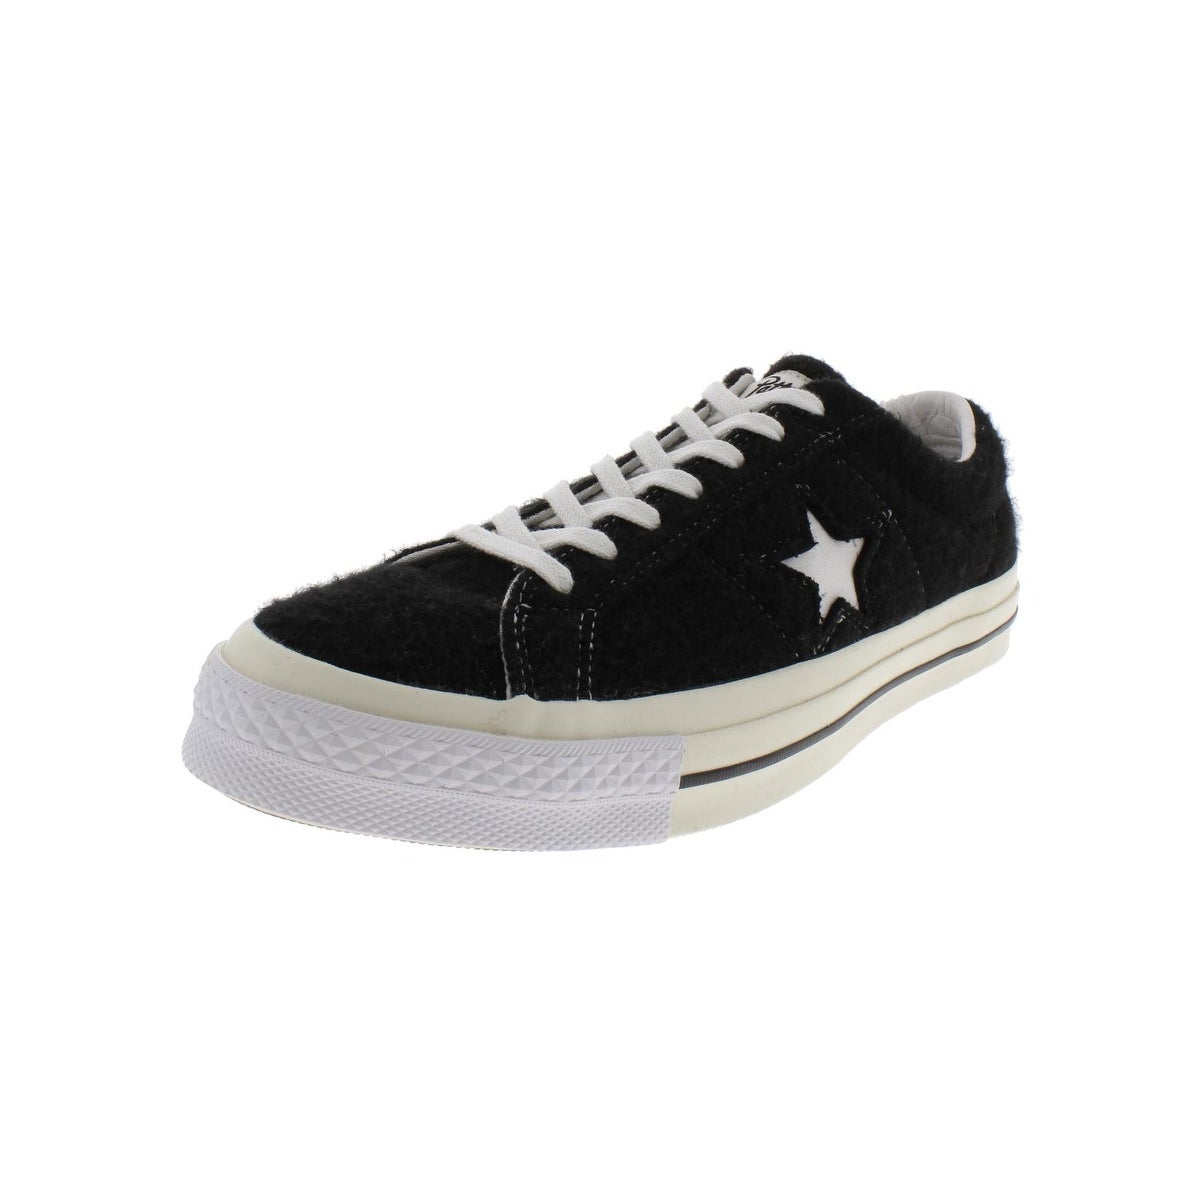 Converse Mens One Star Ox Fashion Sneakers Skate Lifestyle